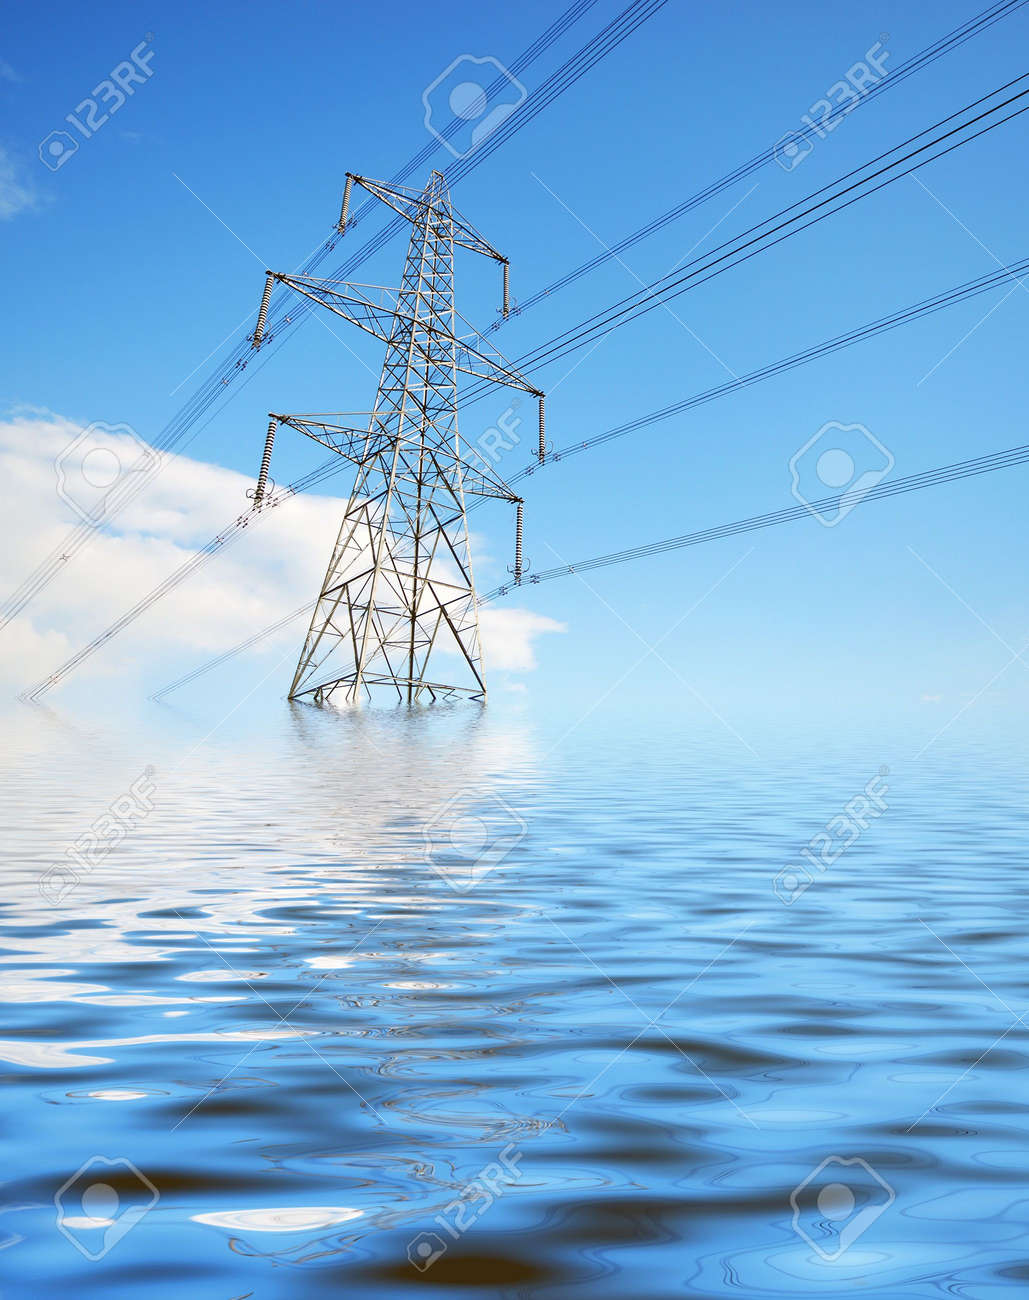 Environmental concept showing electricity pylon under simulated water Stock Photo - 4964161